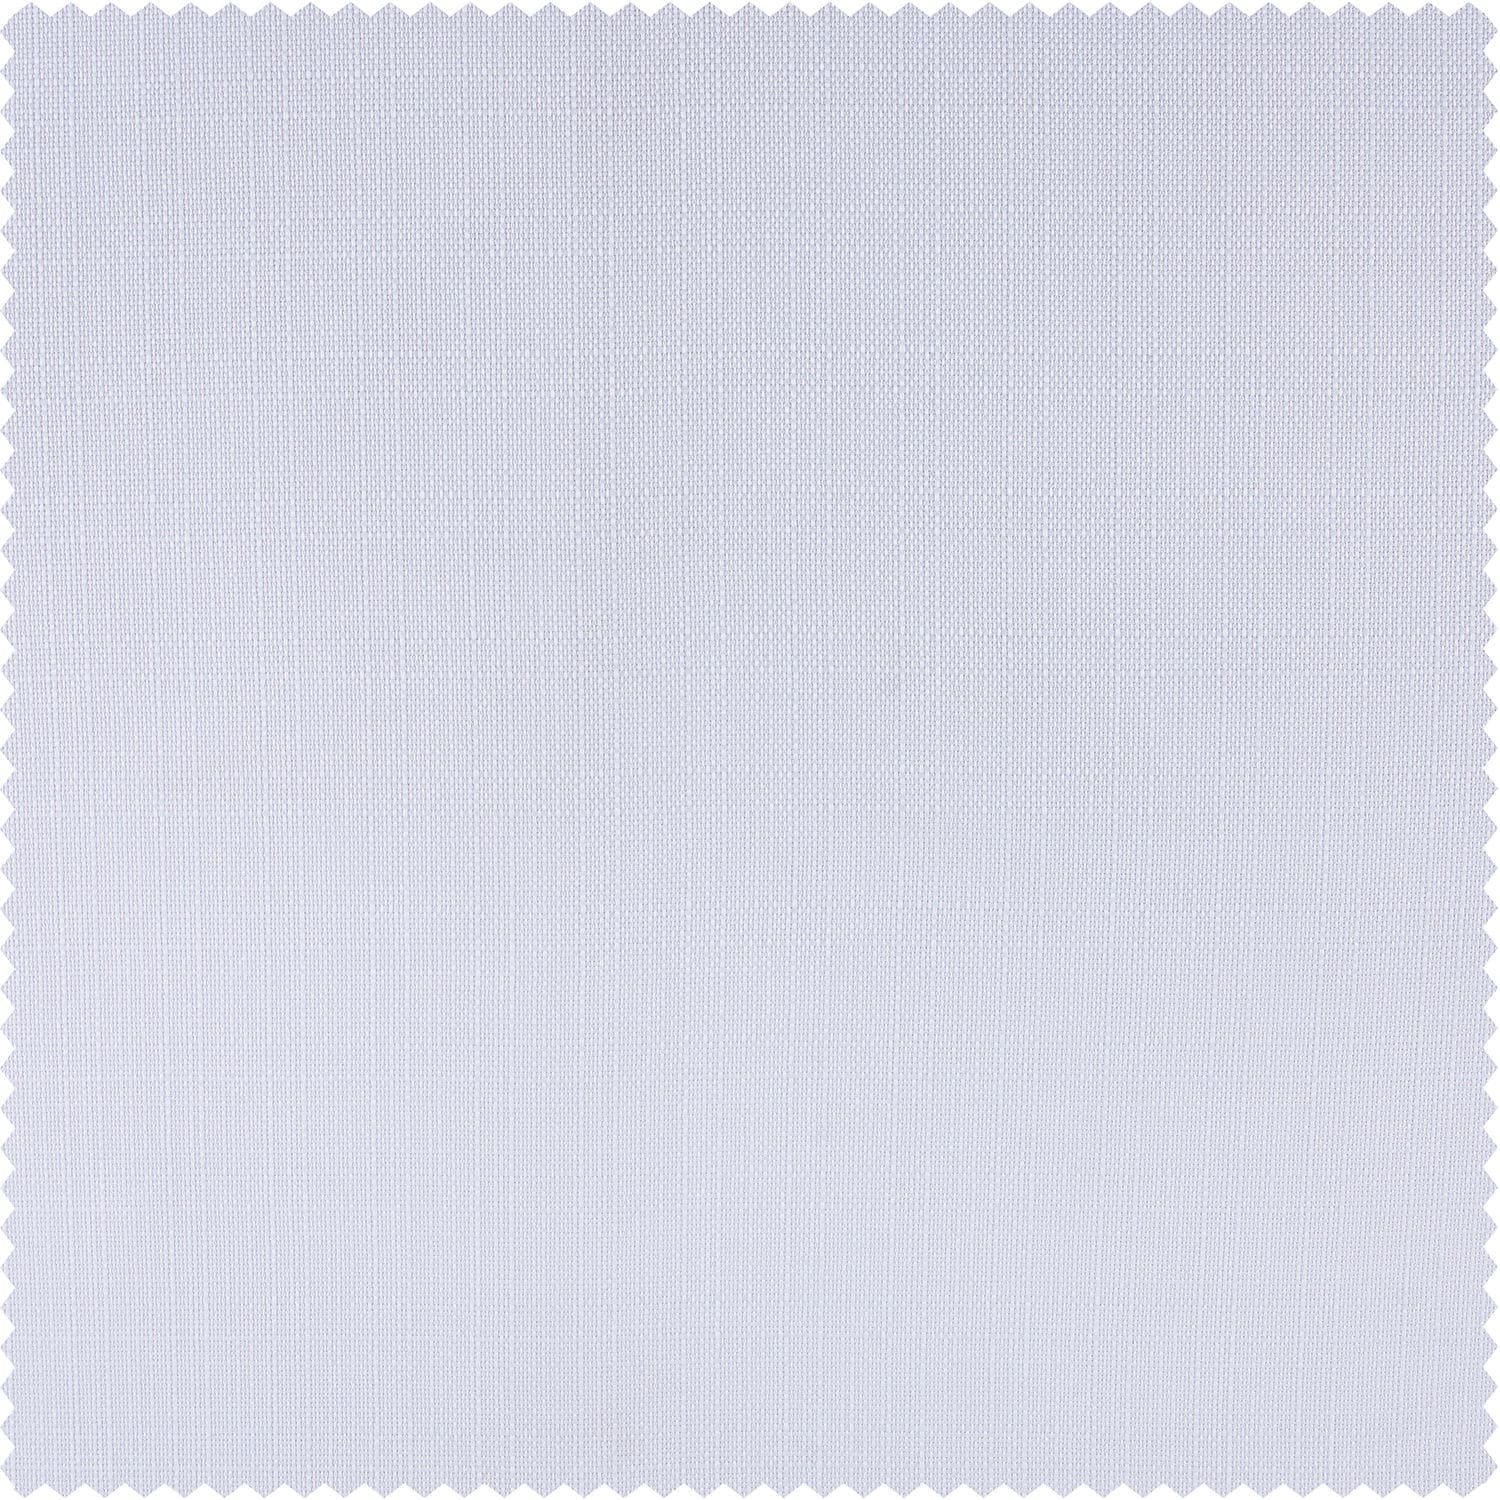 Dove White Italian Faux Linen Swatch